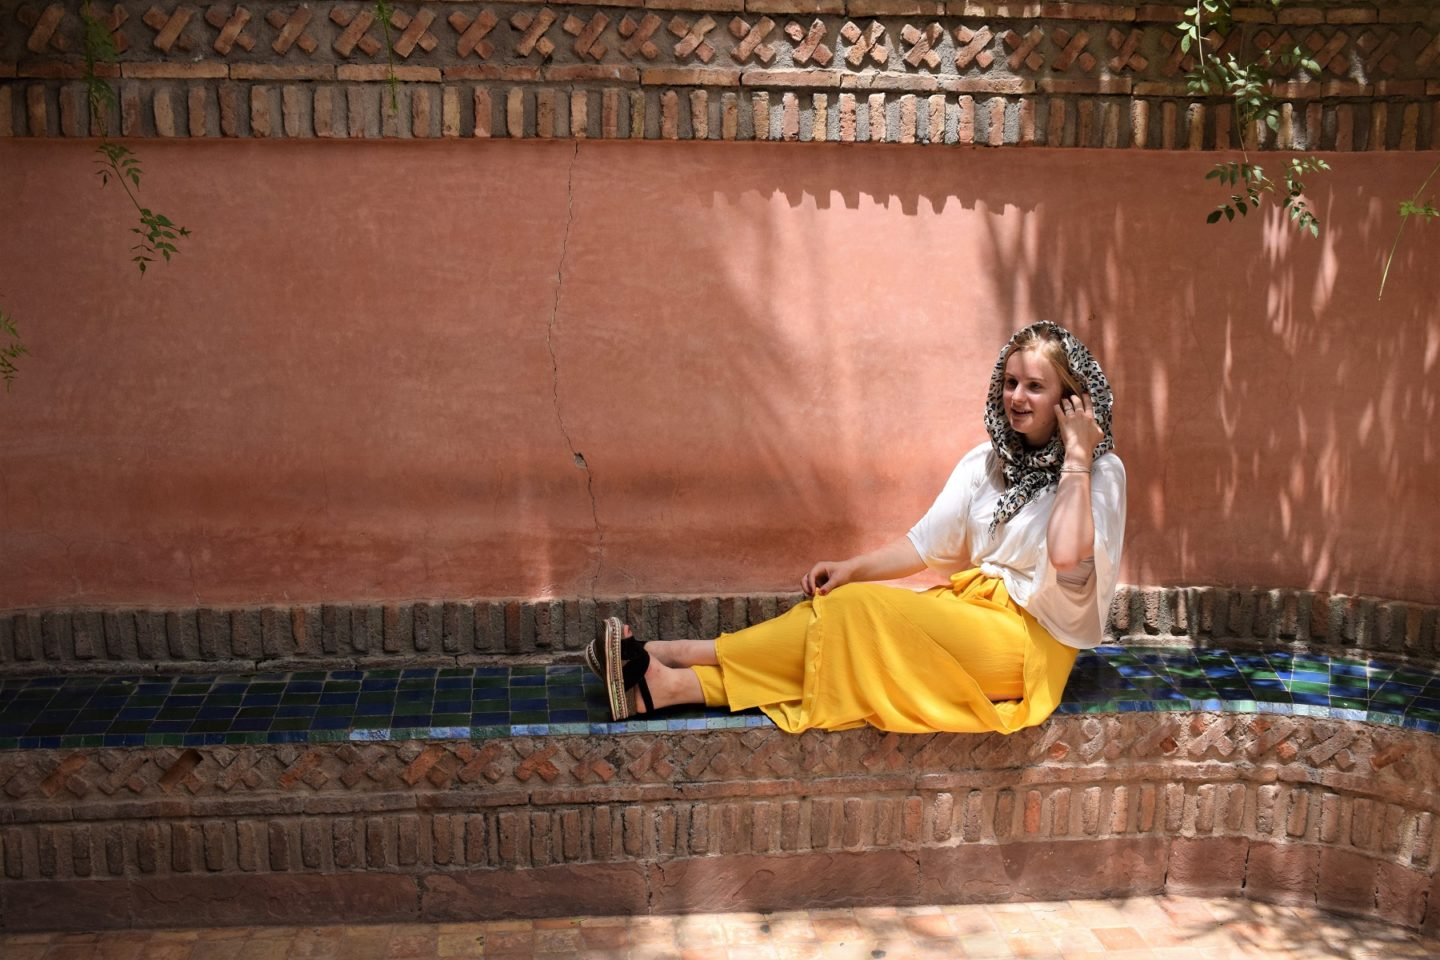 Marrakech diary • day 3